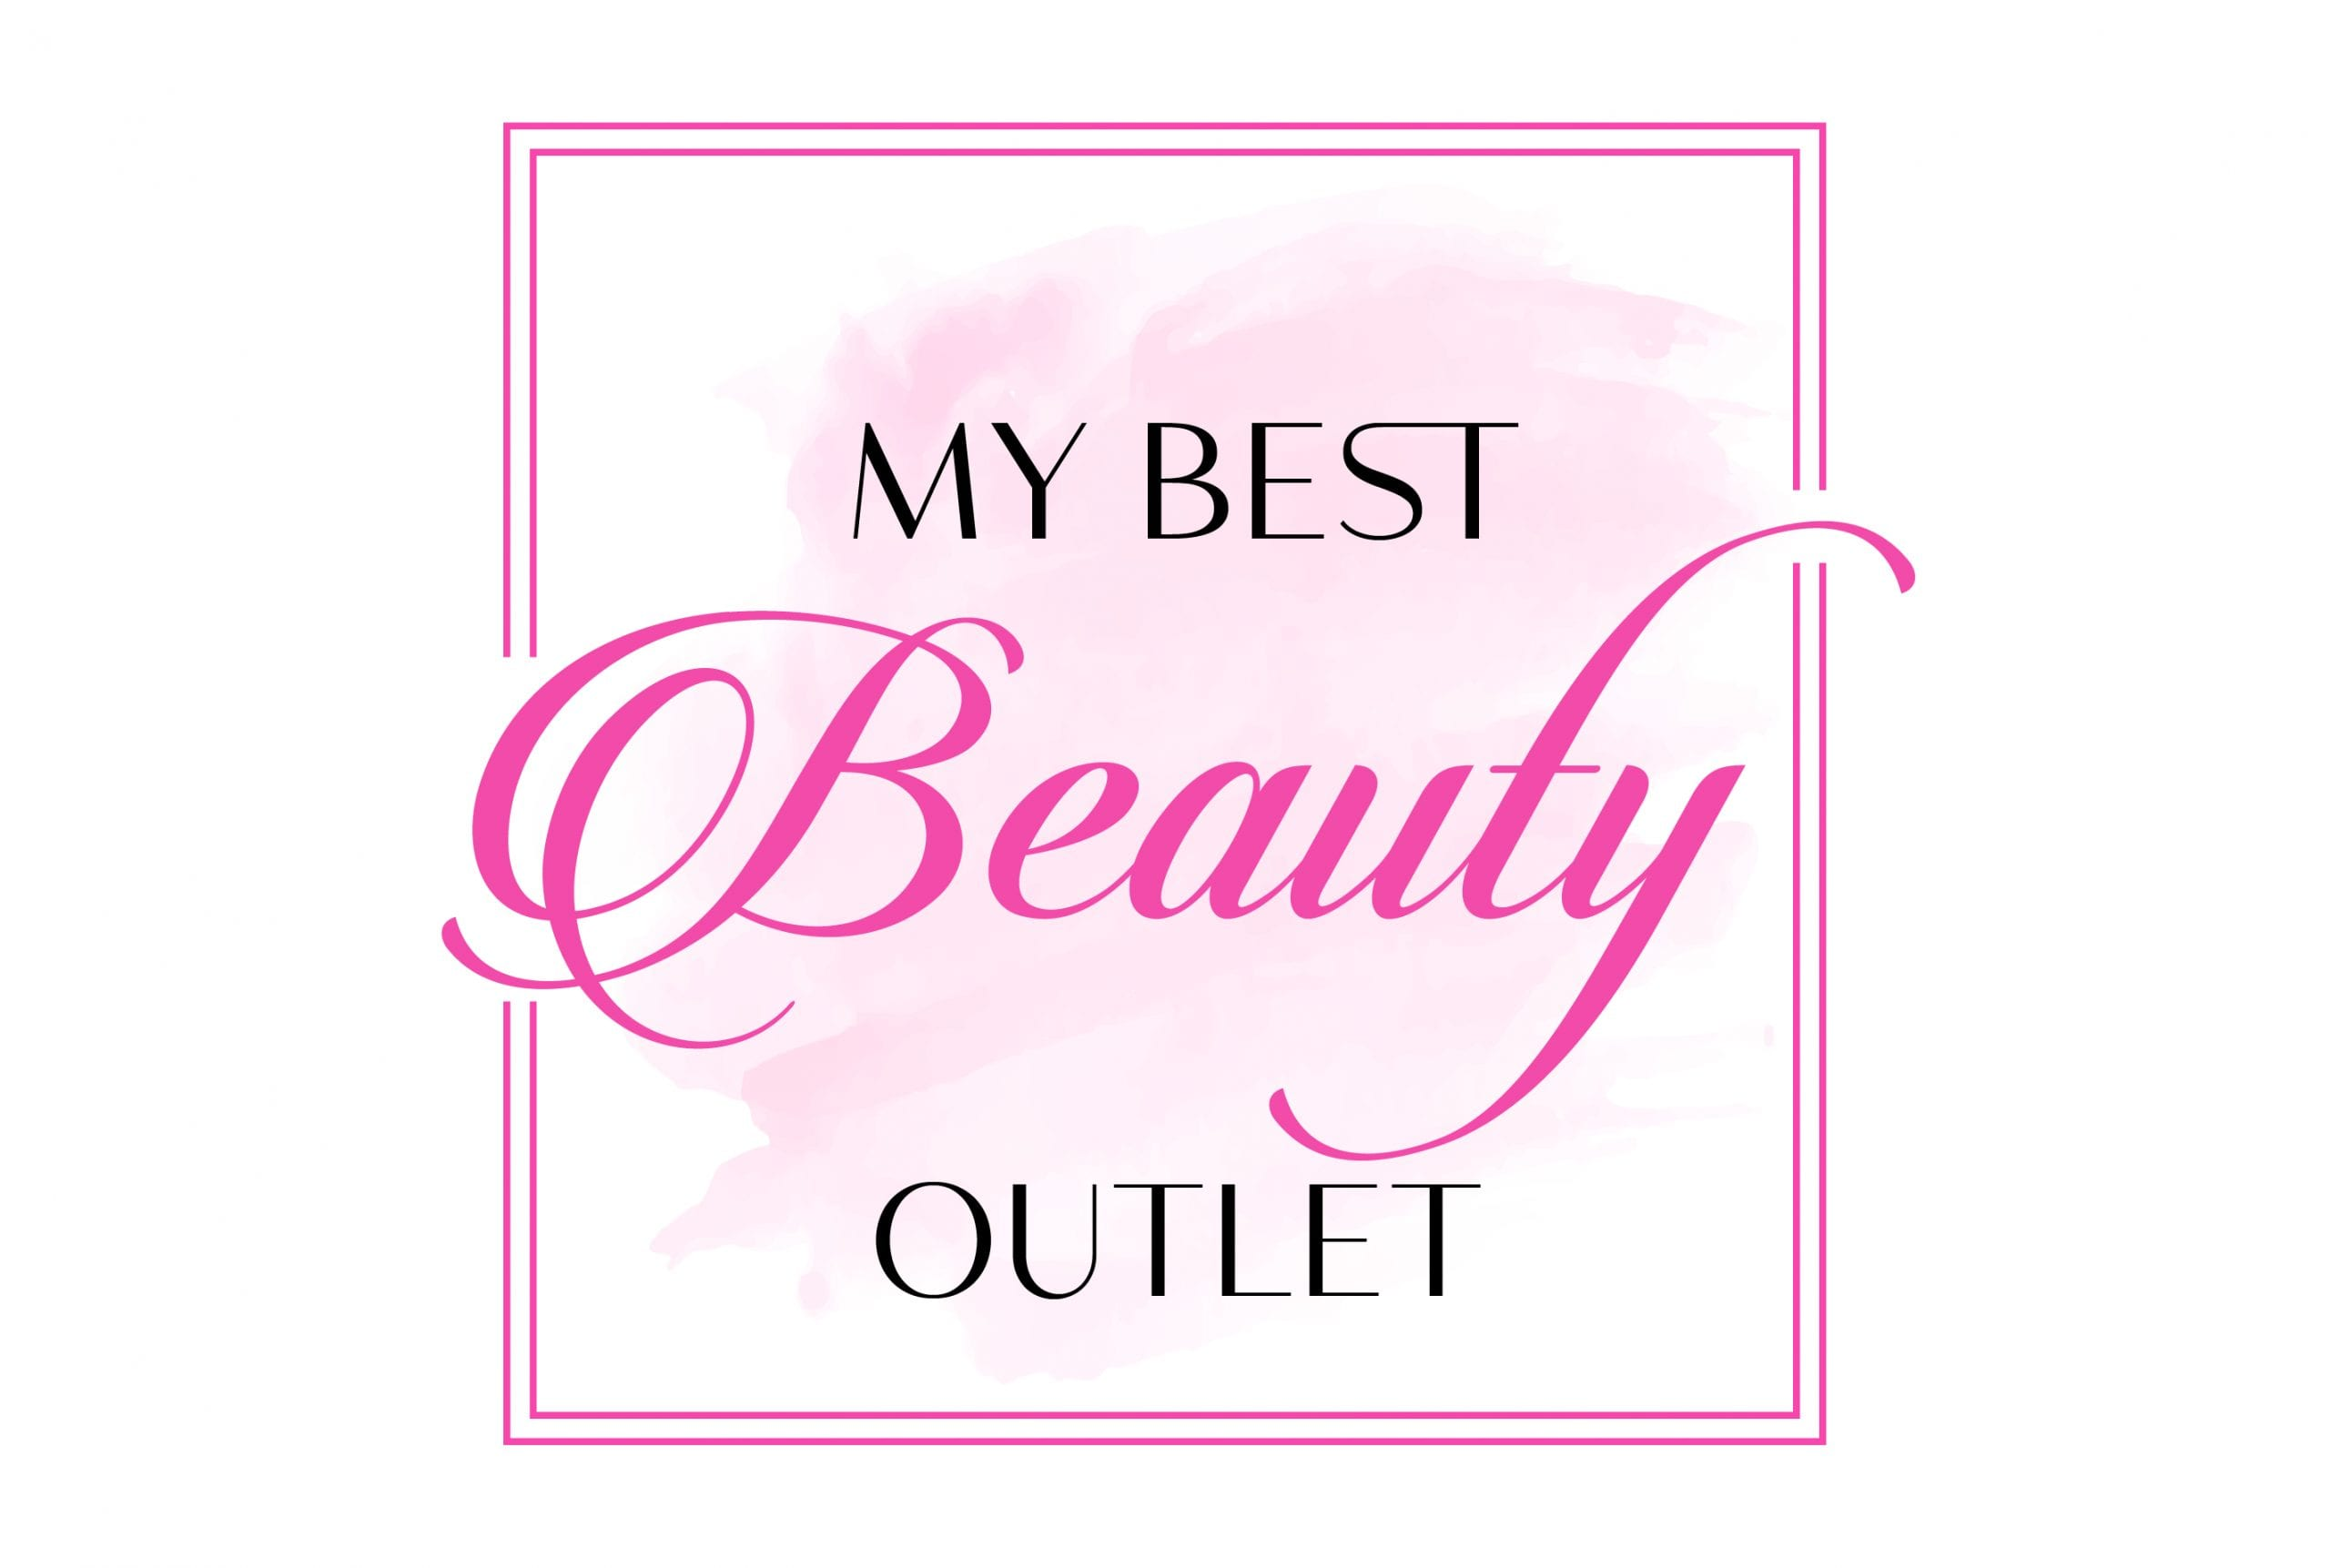 My Best Beauty Outlet logo